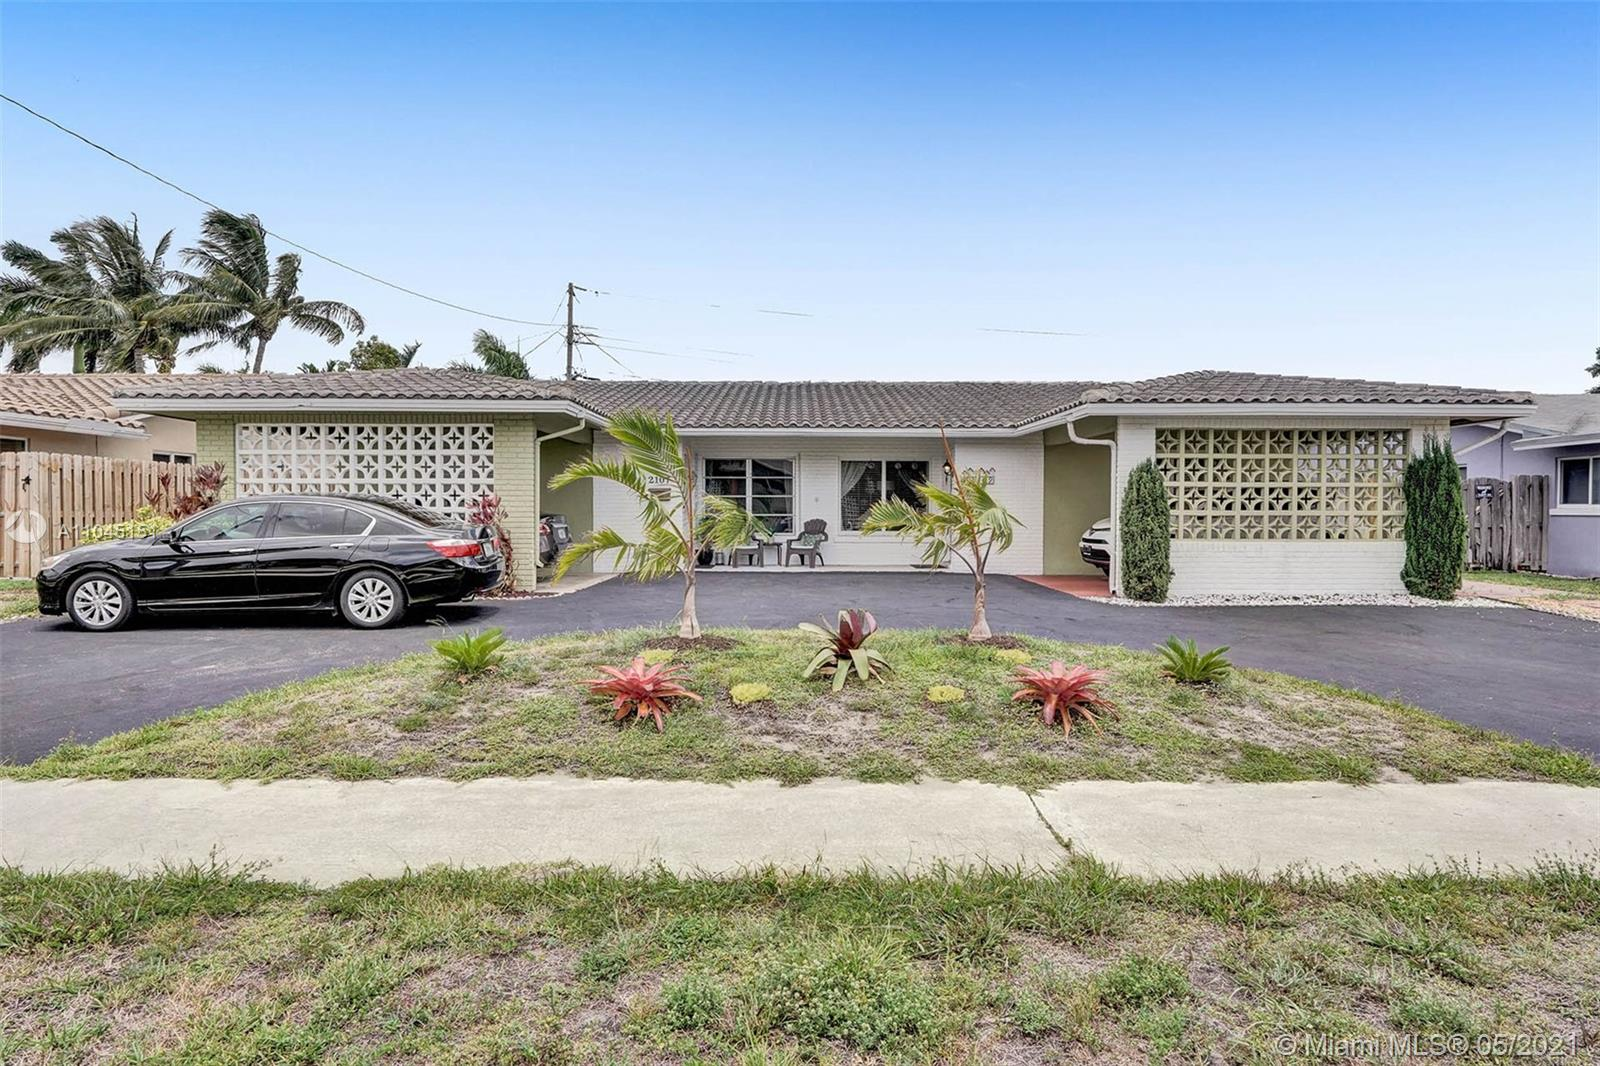 Imperial Point, 2109 NE 56th Ct Unit 2109, Fort Lauderdale, Florida 33308